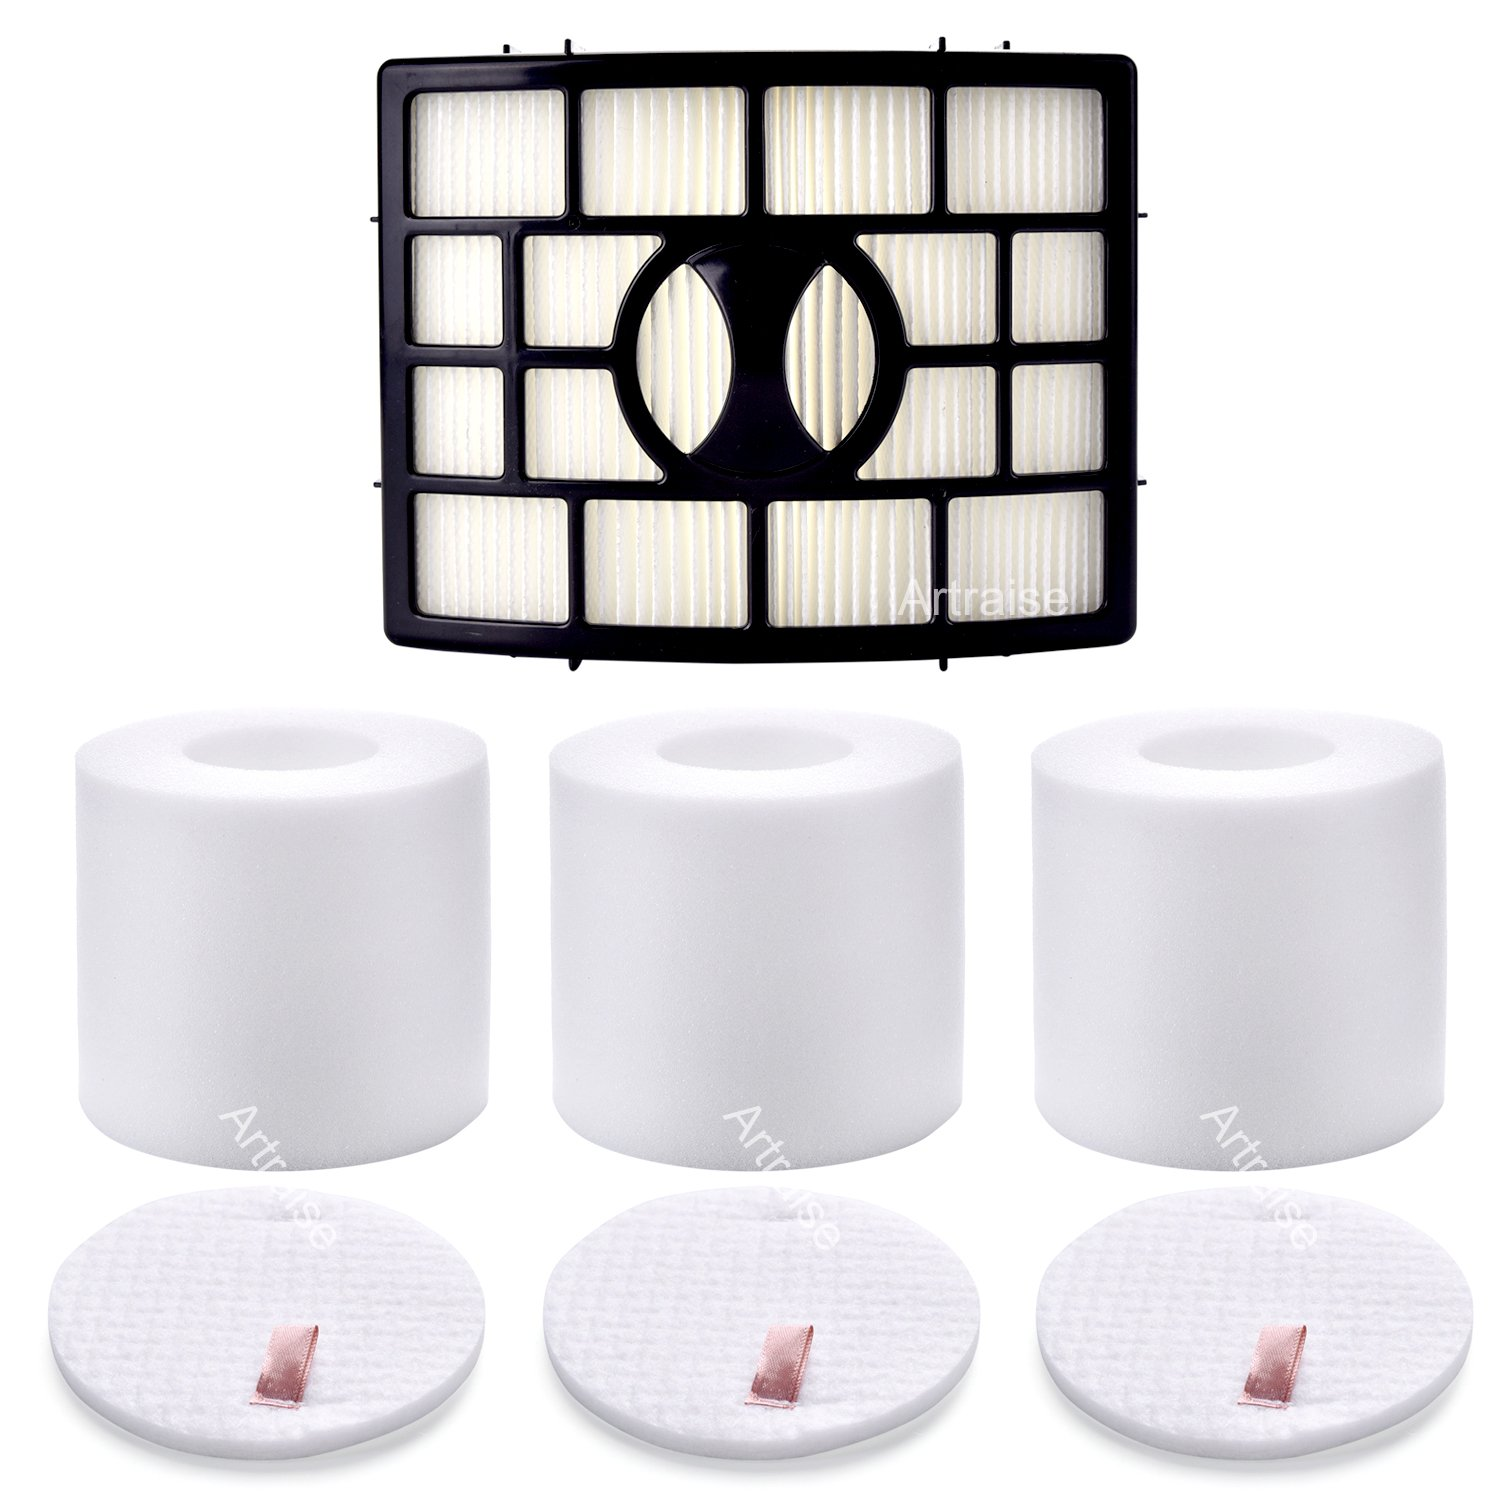 3 Pack Filters for Shark Rotator Powered Lift-Away NV650, NV750, AX950, AX951, AX952, XFF650 & XHF650 By Artraise